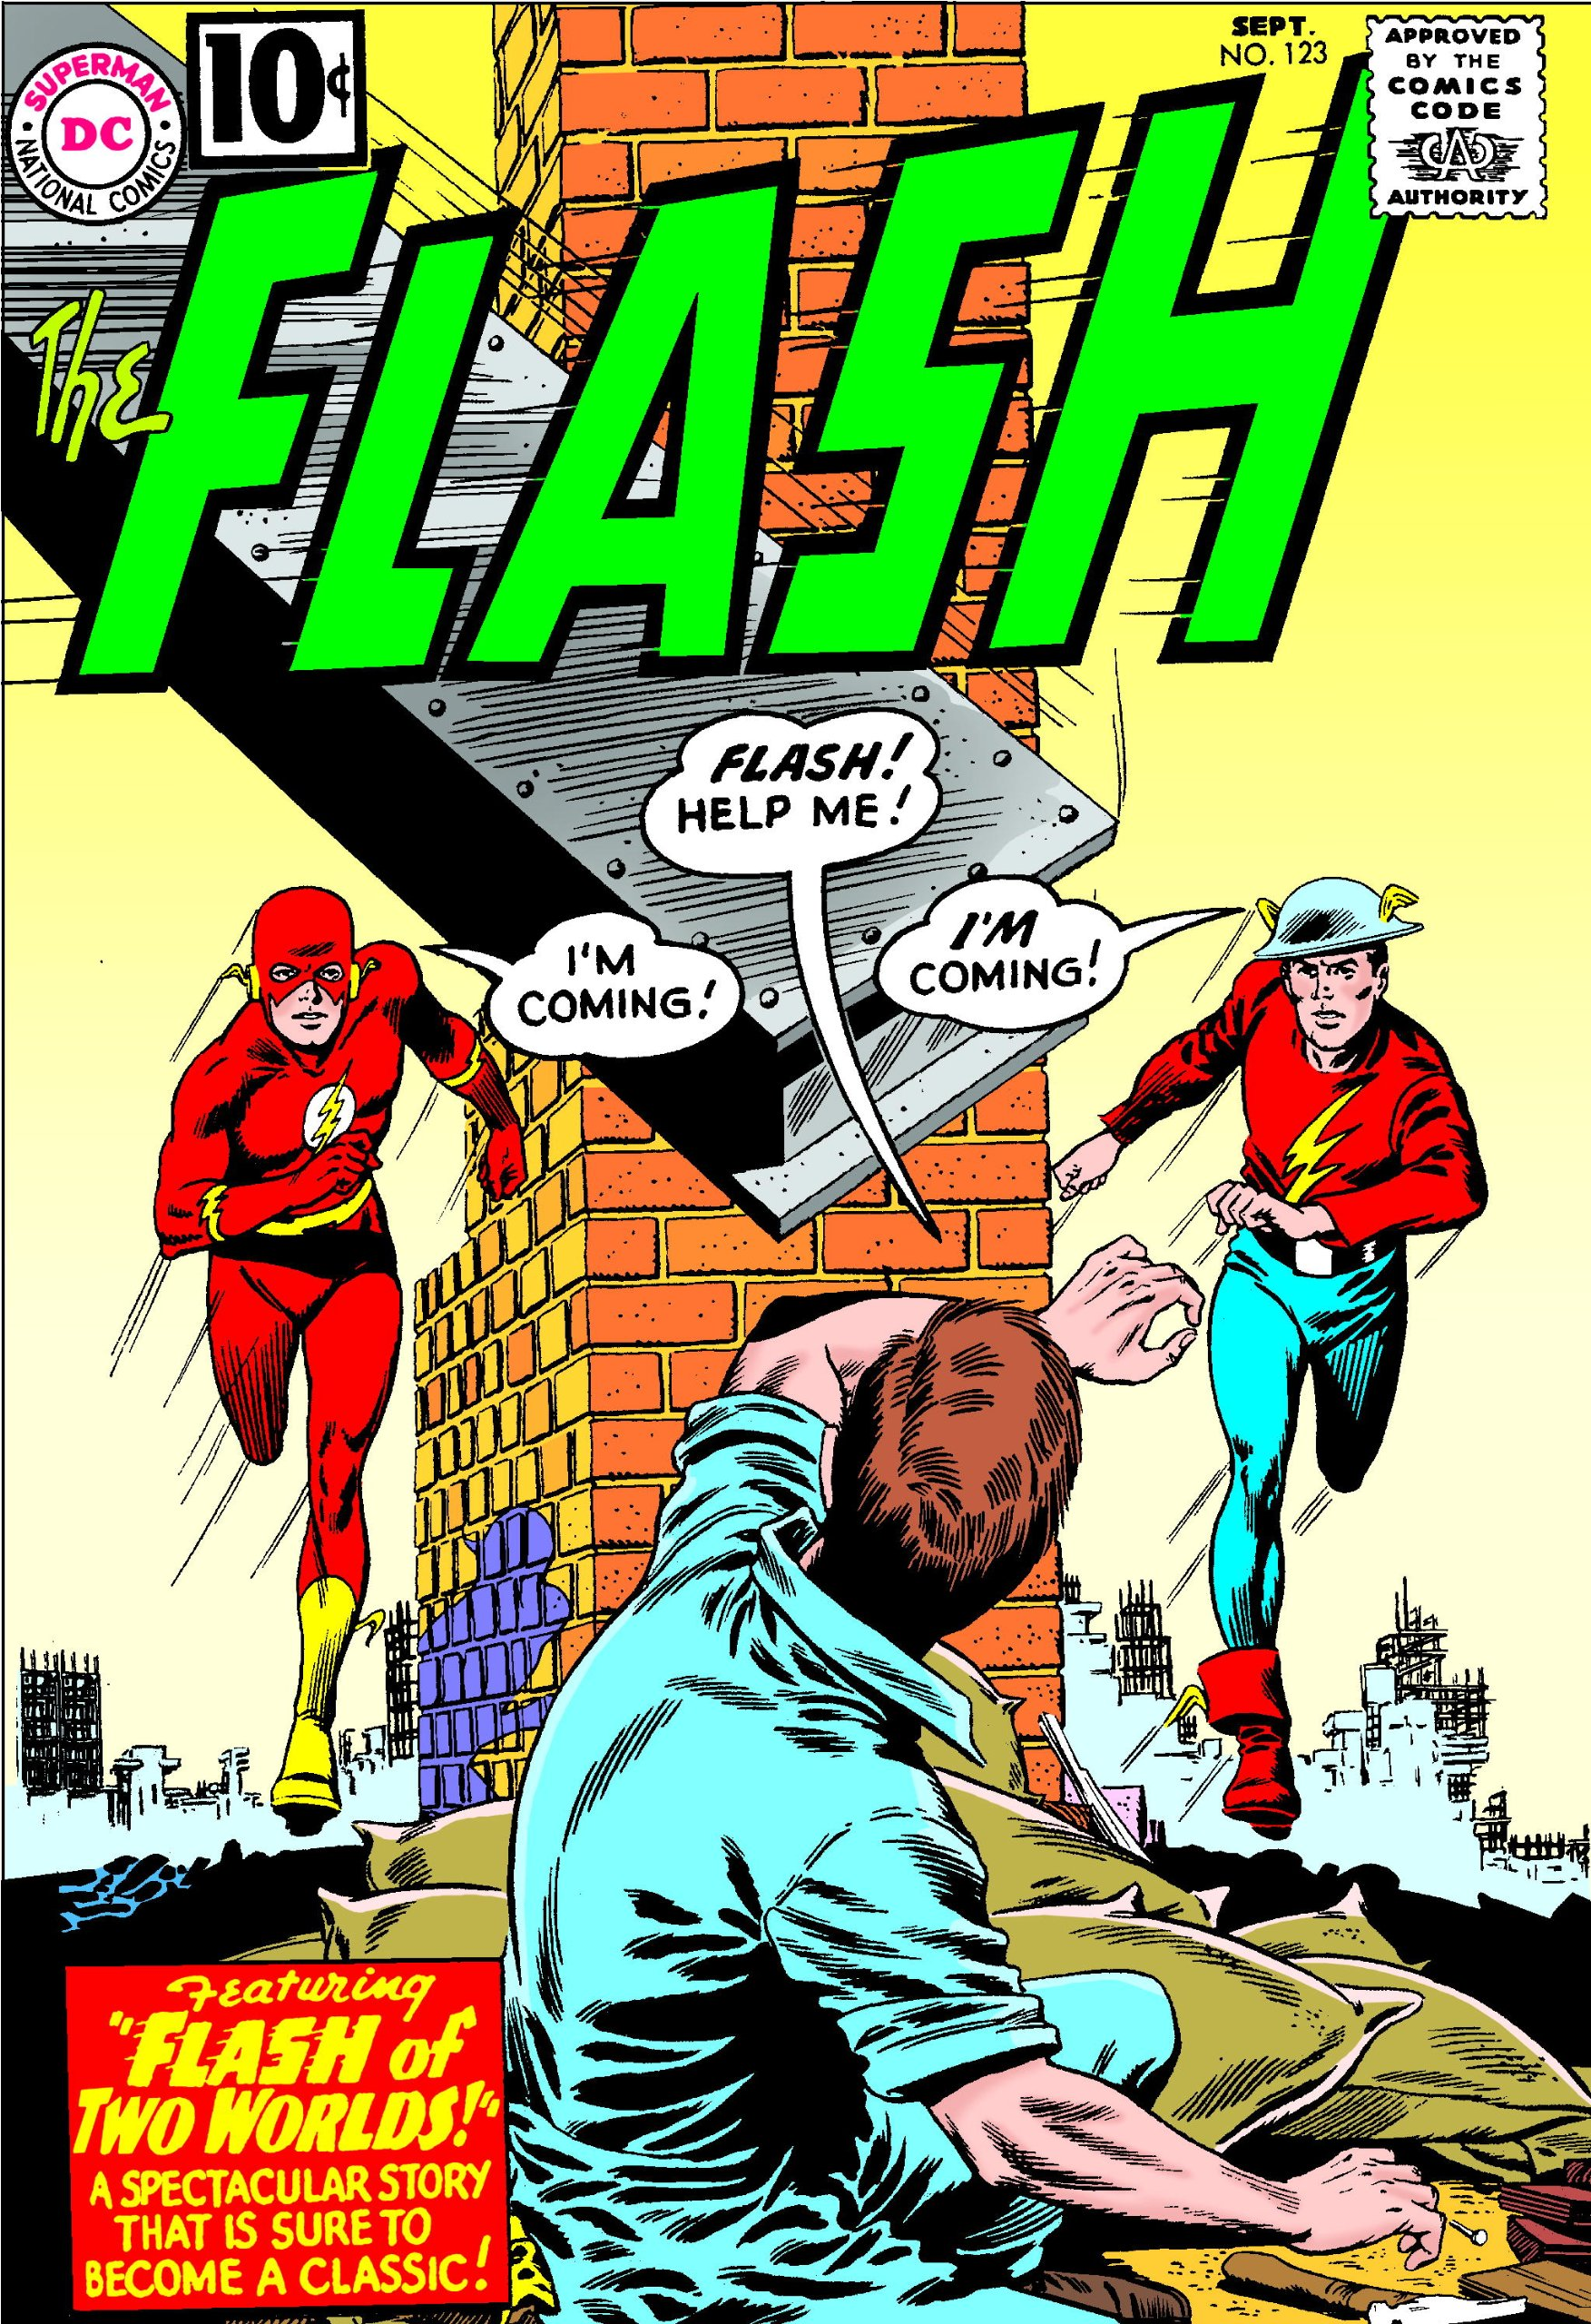 The Flash #123 in 1961